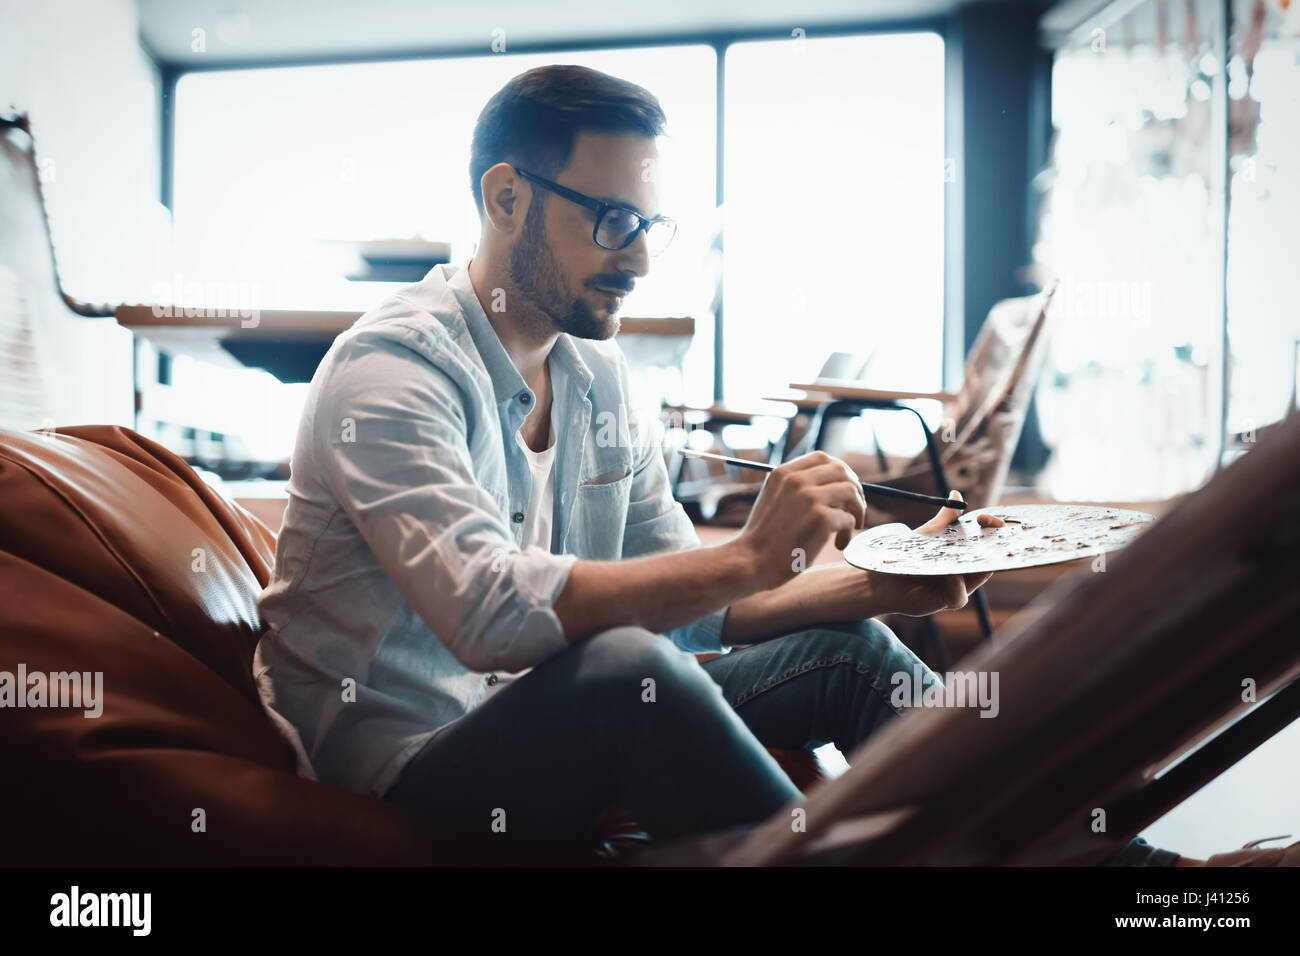 Portrait Of Male Artist Working On Painting Art In Studio - Stock Image